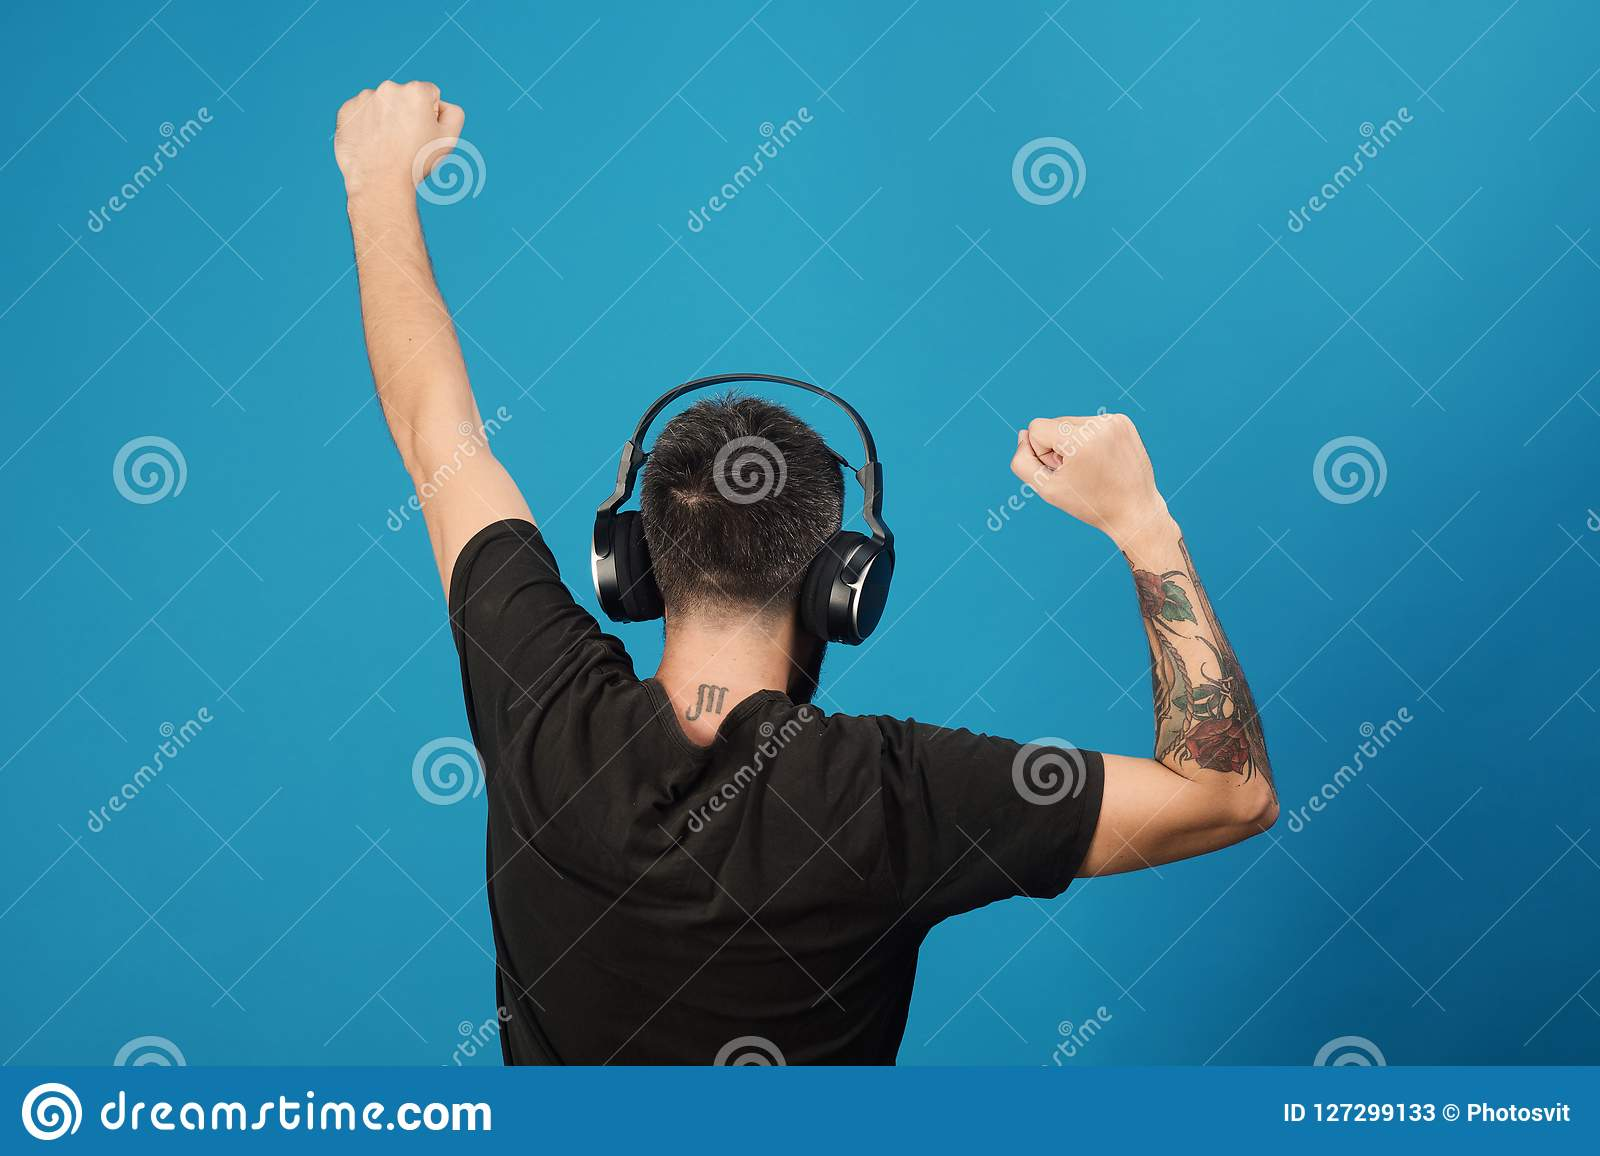 Relax and music concept. Dj with scorpio tattoo wears headphones